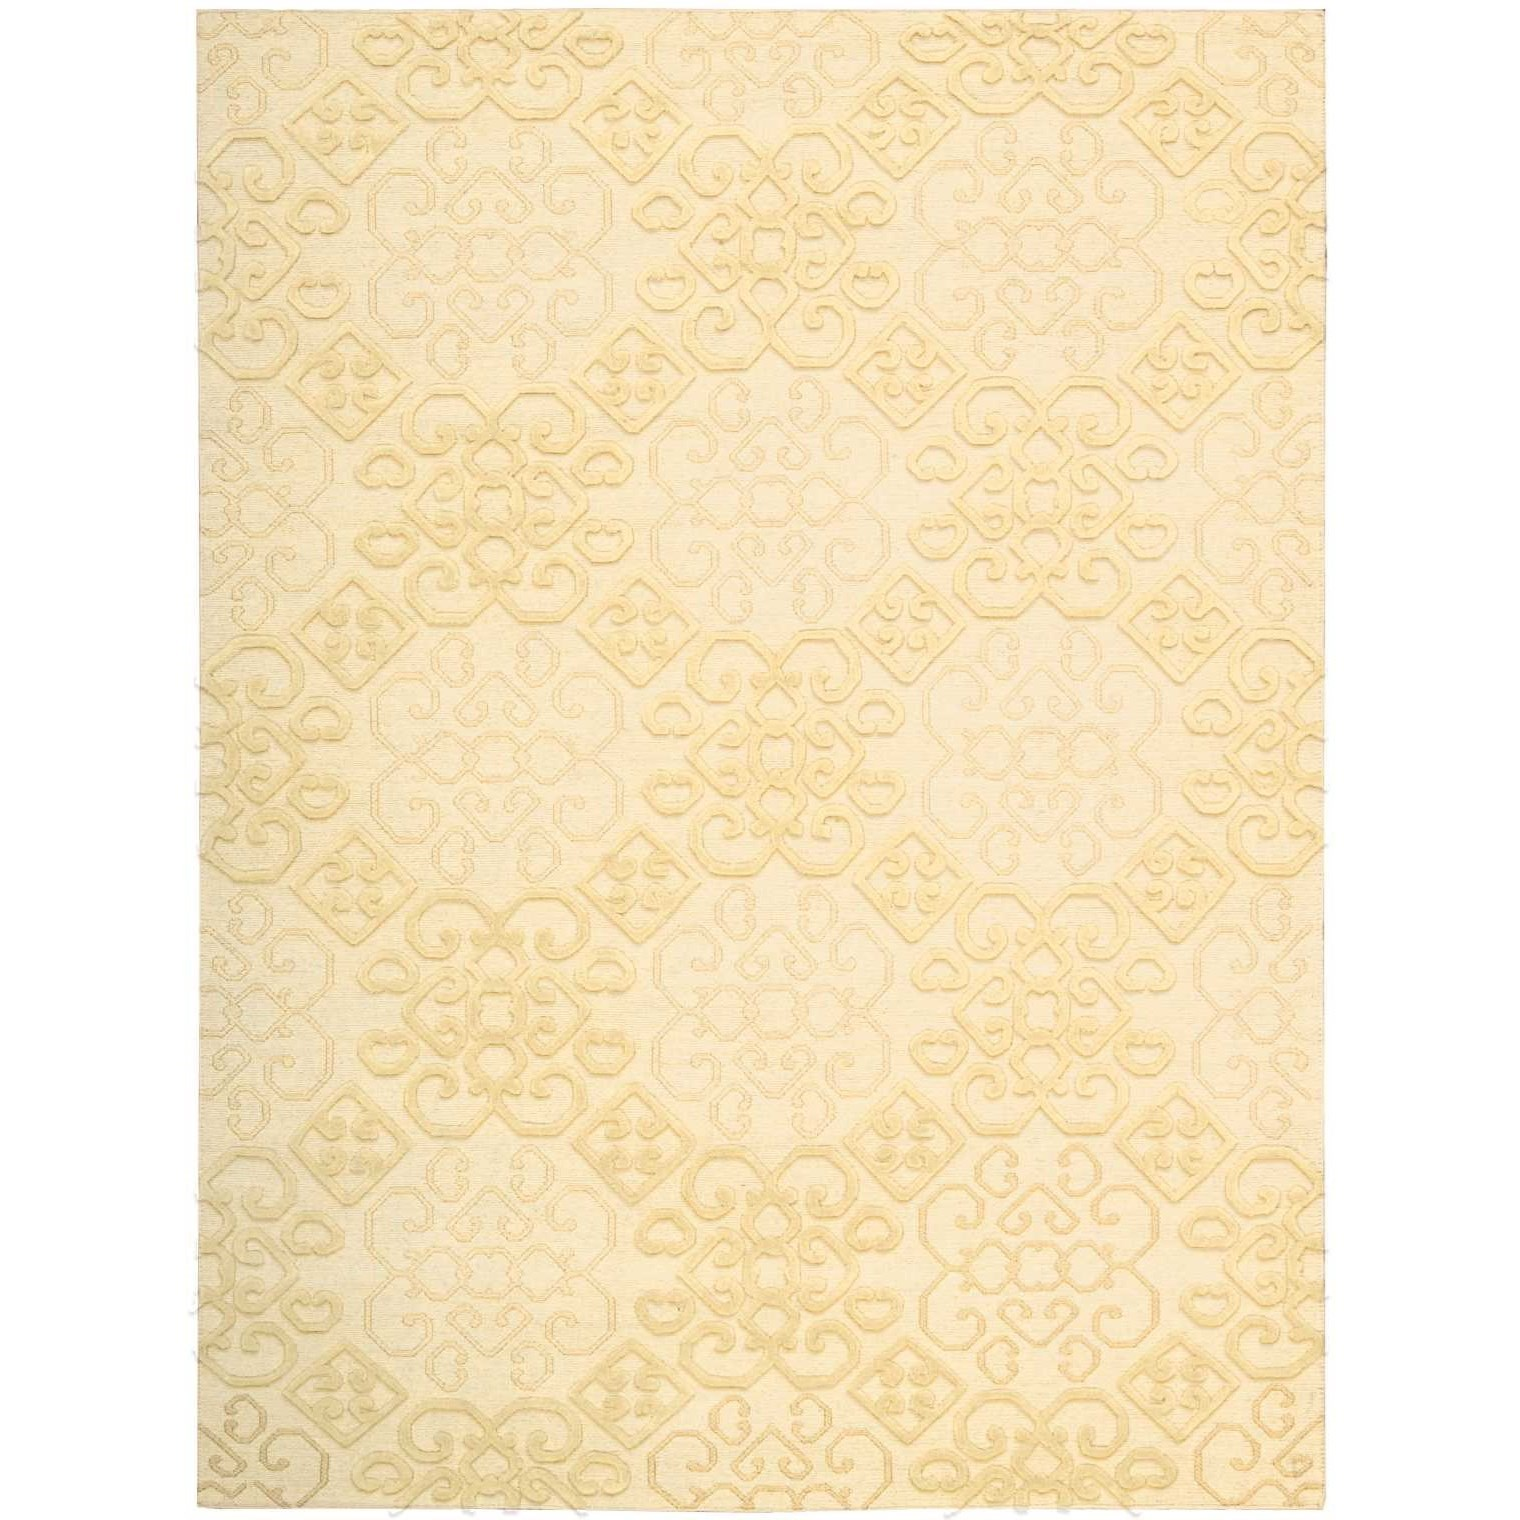 "Ambrose 5'6"" x 7'5"" Linen Rectangle Rug by Nourison at Sprintz Furniture"